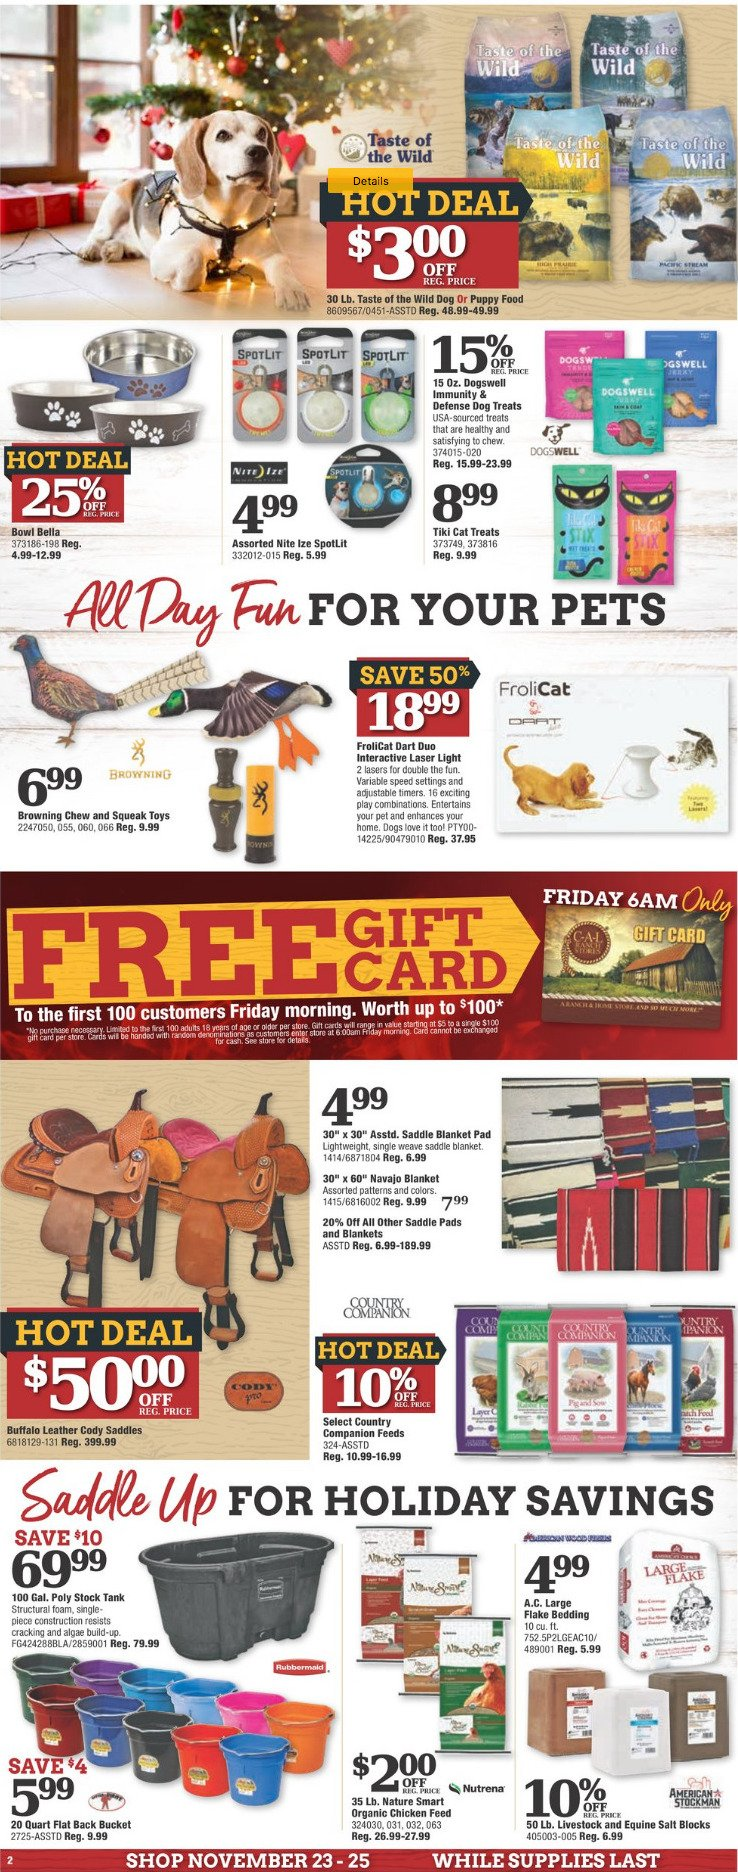 Cal Ranch Stores 2018 Black Friday Ad Frugal Buzz